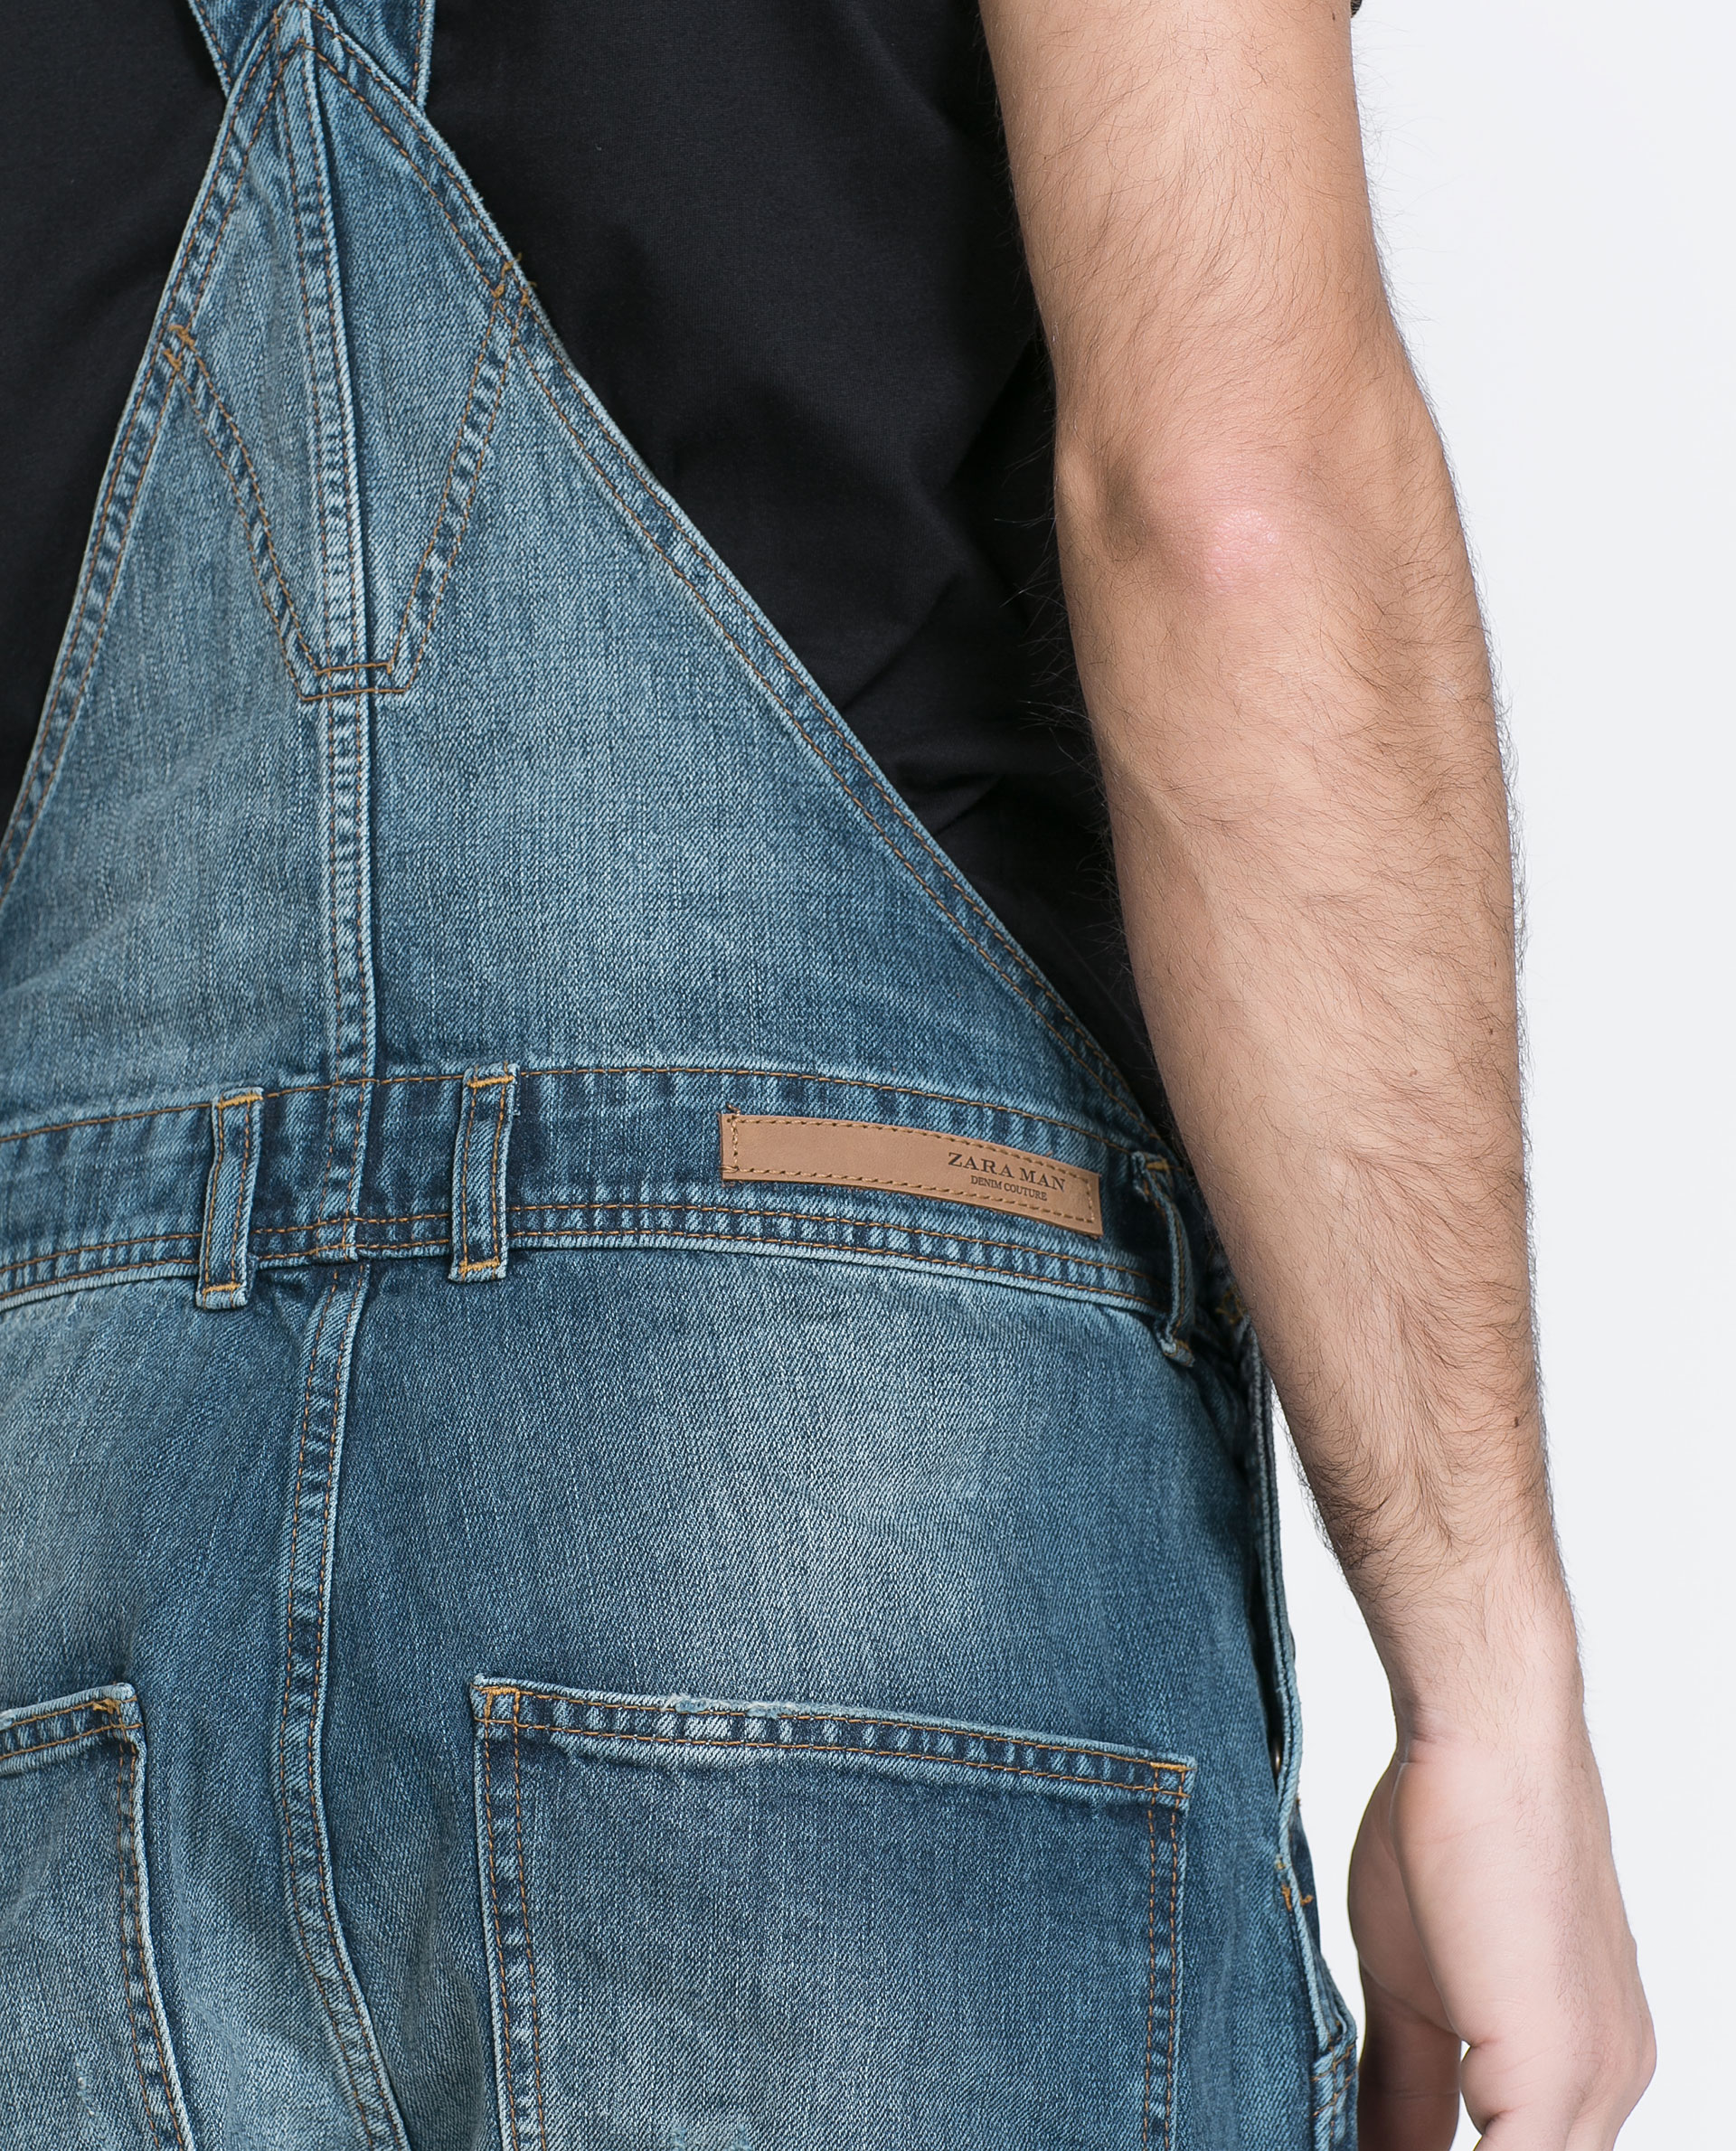 Find great deals on eBay for dungarees men. Shop with confidence. Skip to main content. eBay: Shop by category. Shop by category. Enter your search keyword Lucky Brand American Dungarees Mens Blue Jeans 31 X 32 Straight Leg Lucky Brand · 31 · $ or Best Offer +$ shipping.